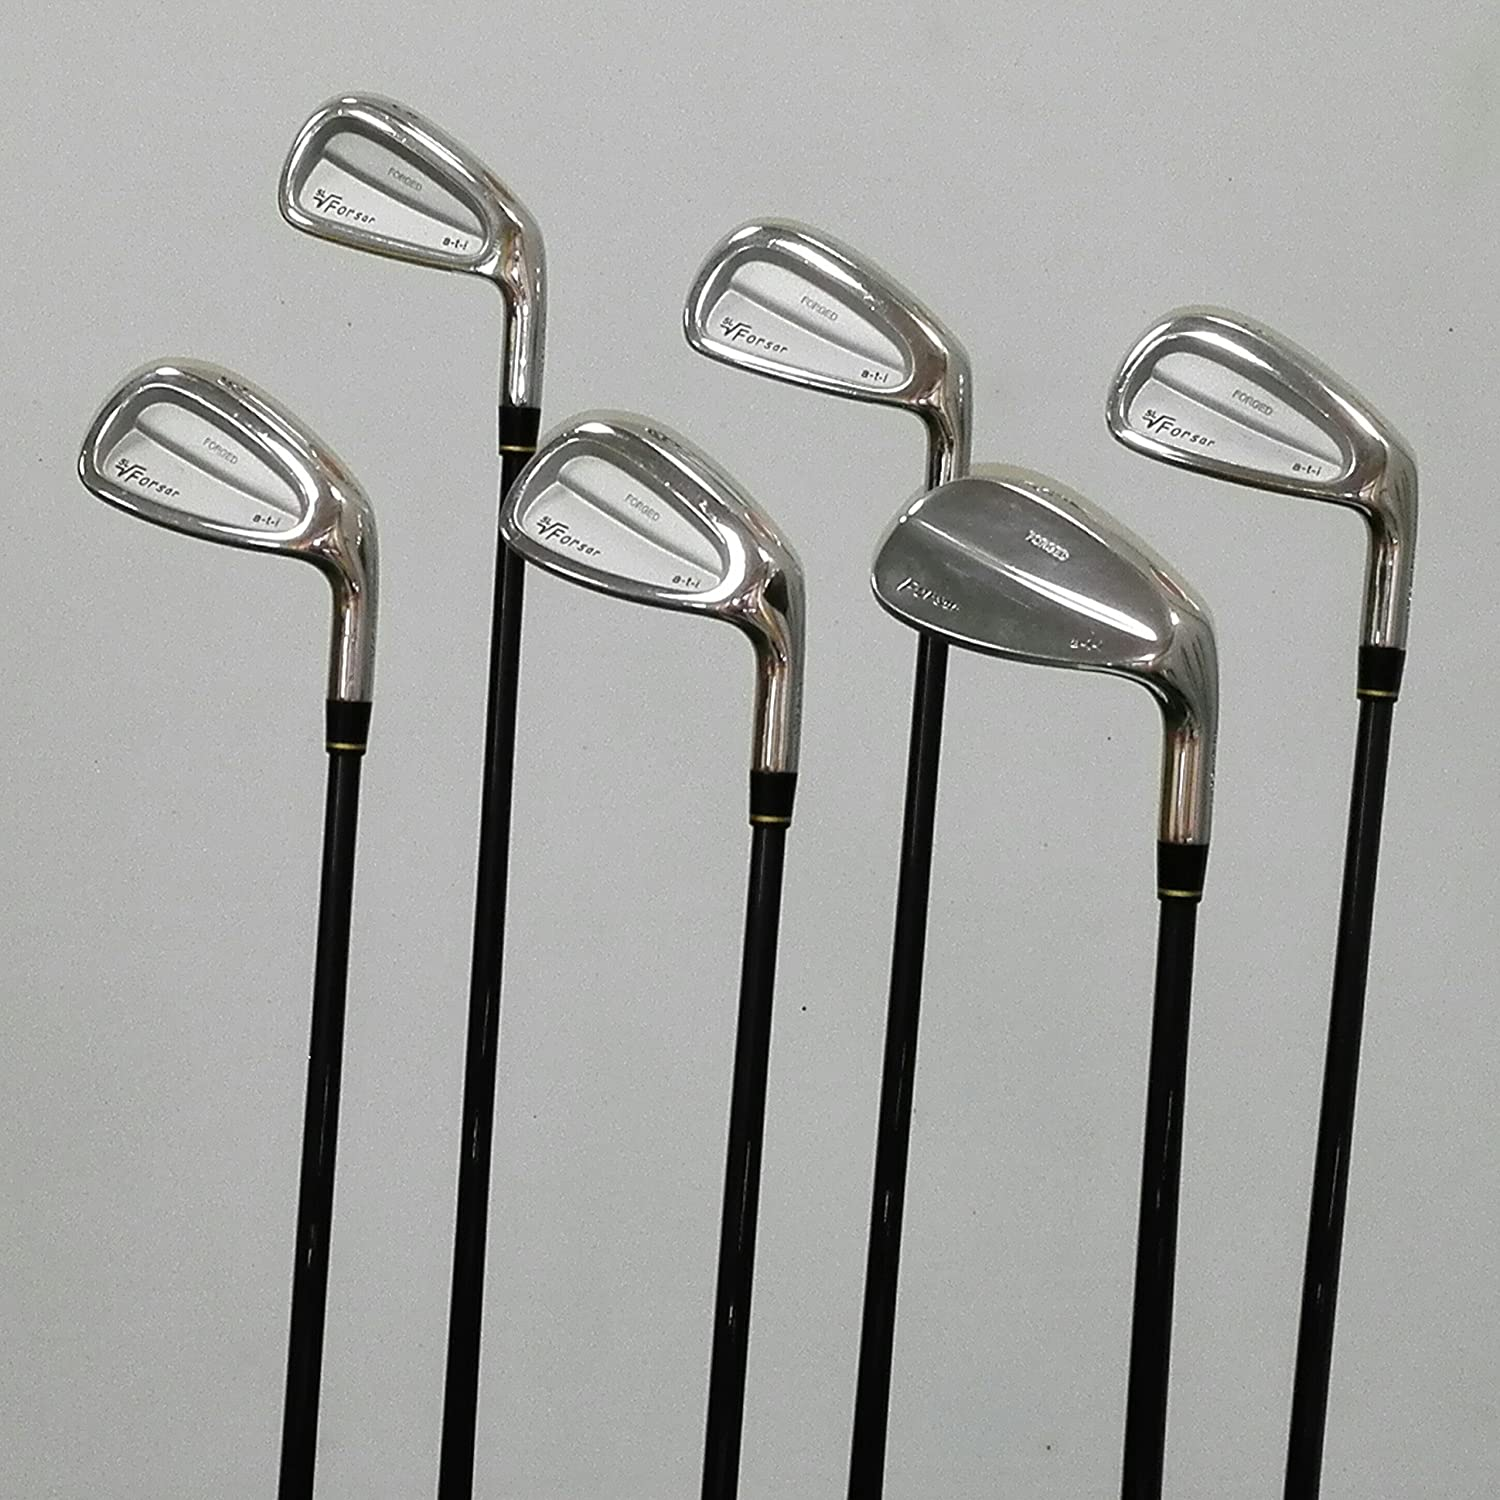 WalkGolf forsar SL 2600 Forged Hierro Moi Matched/harmonised ...